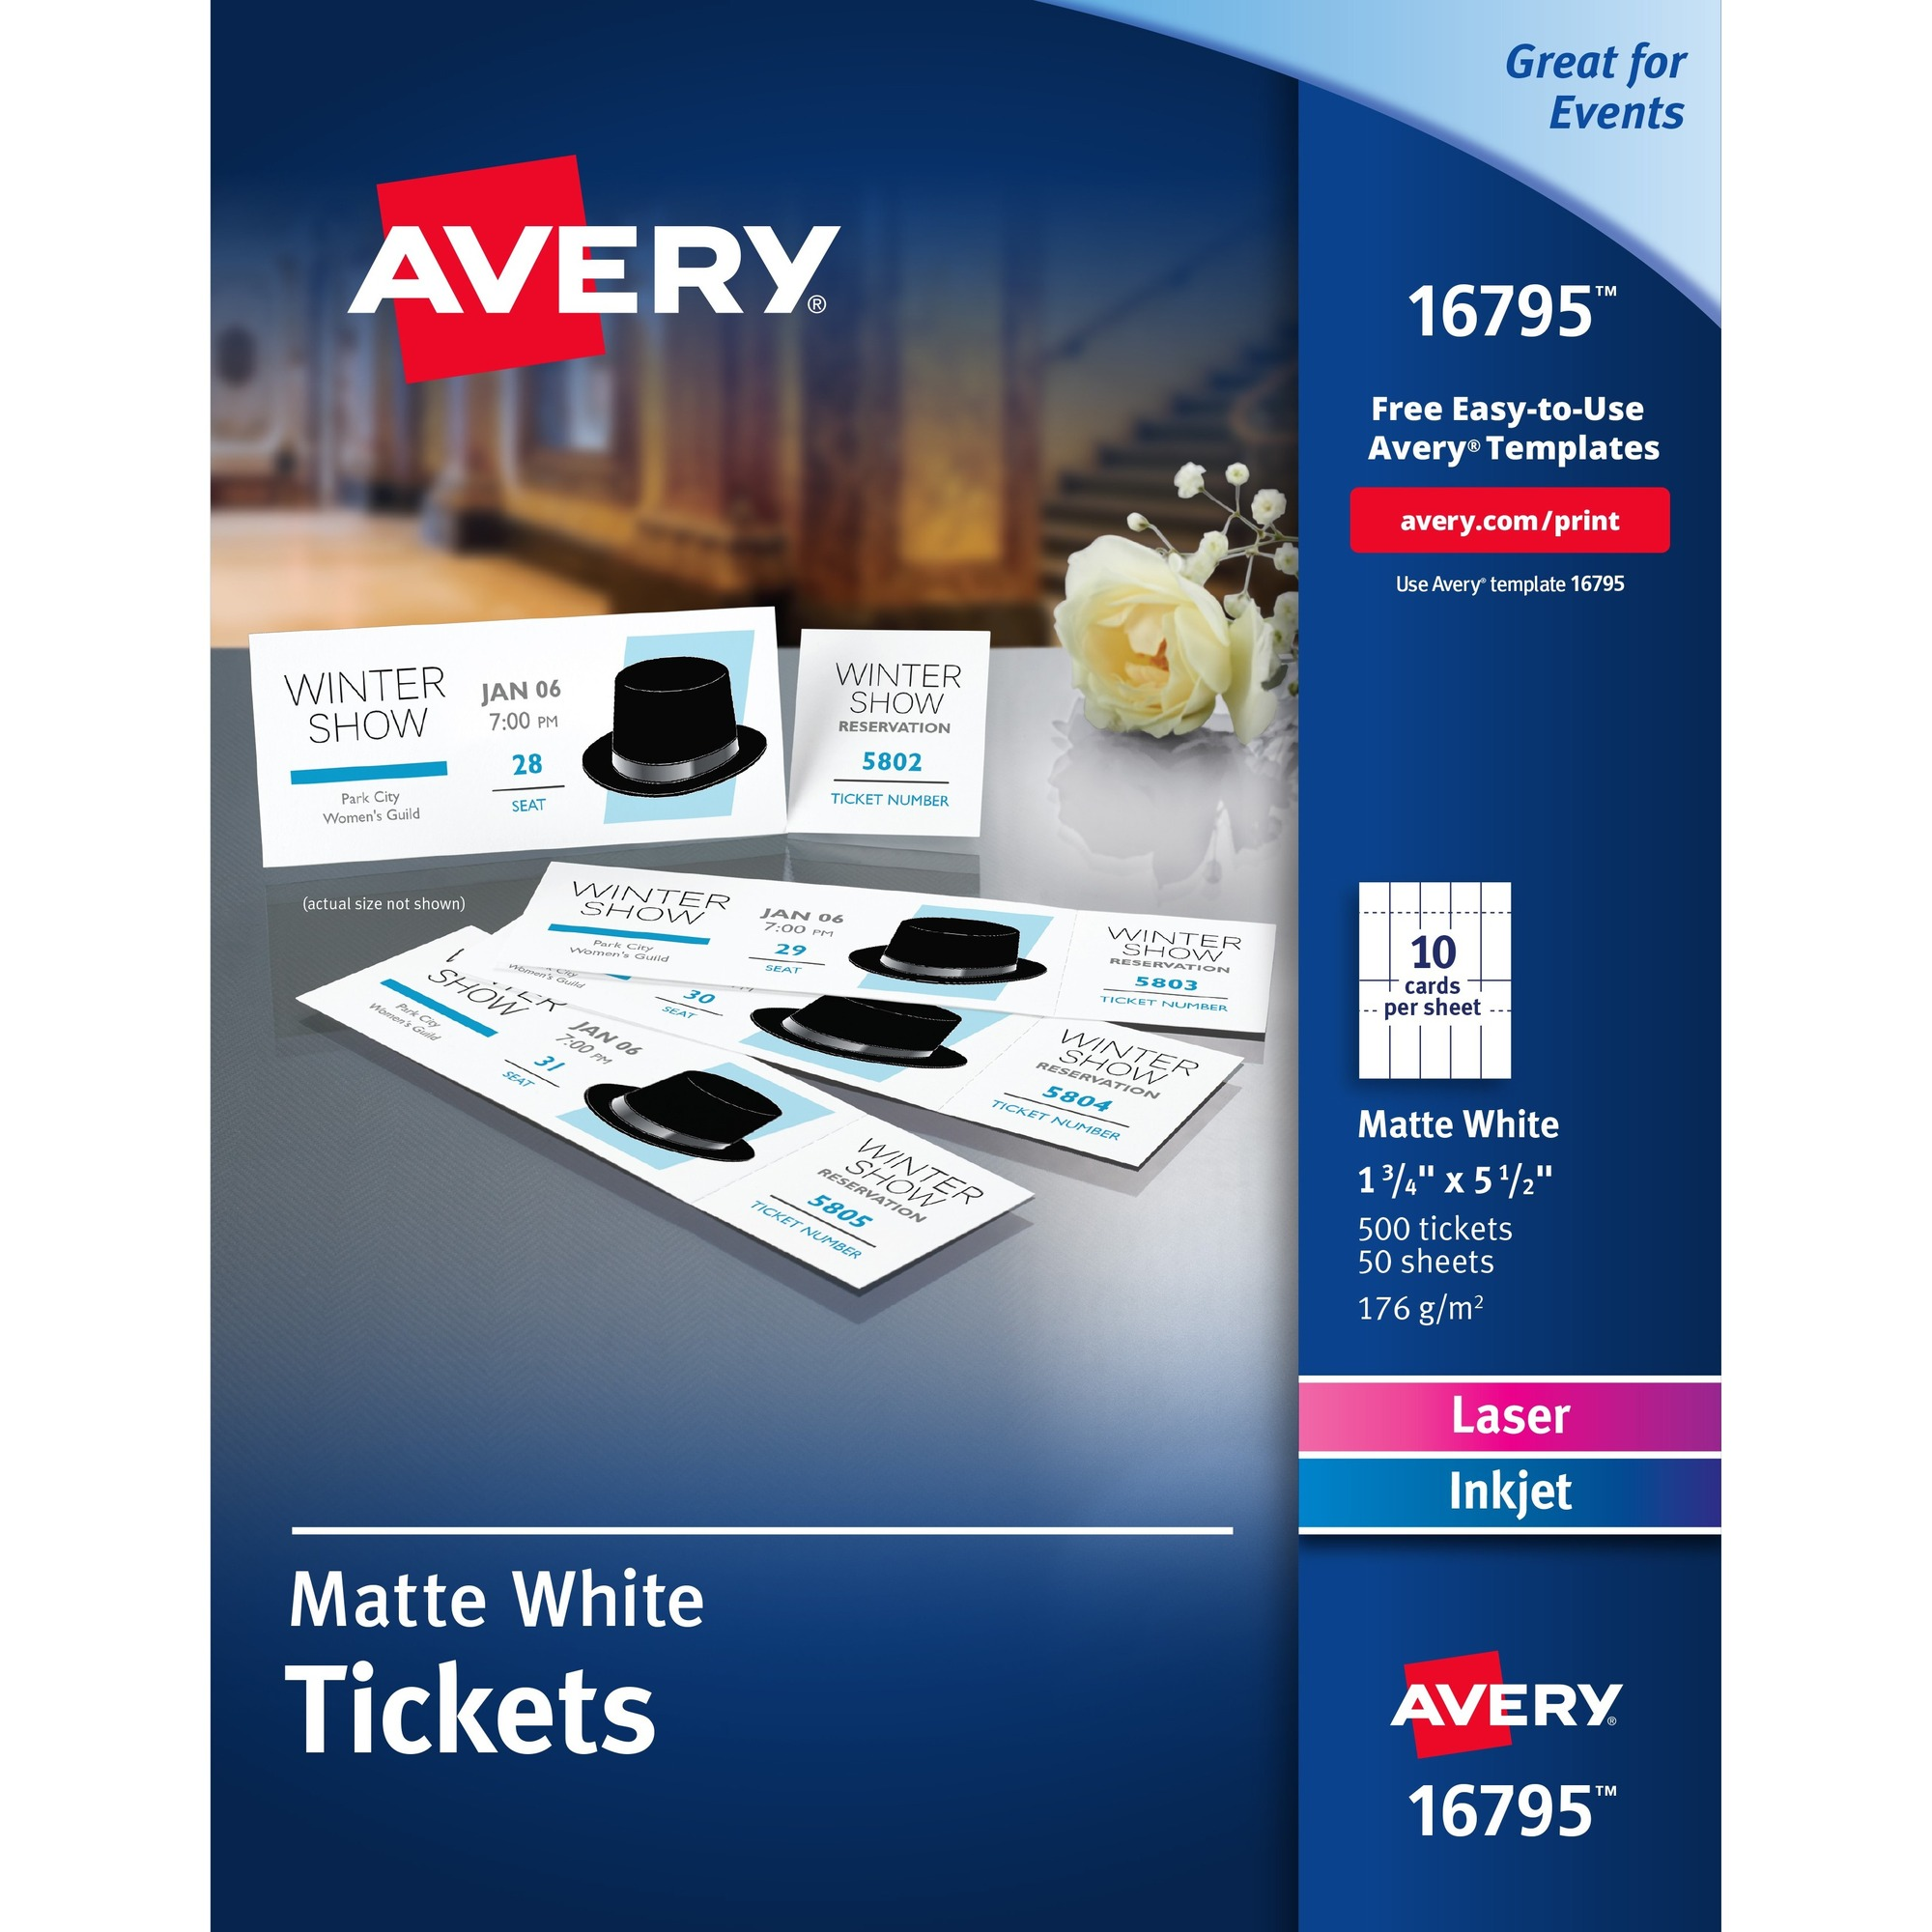 Image for Avery® Tear-away Stubs Matte Printable Tickets - White - 500/pack